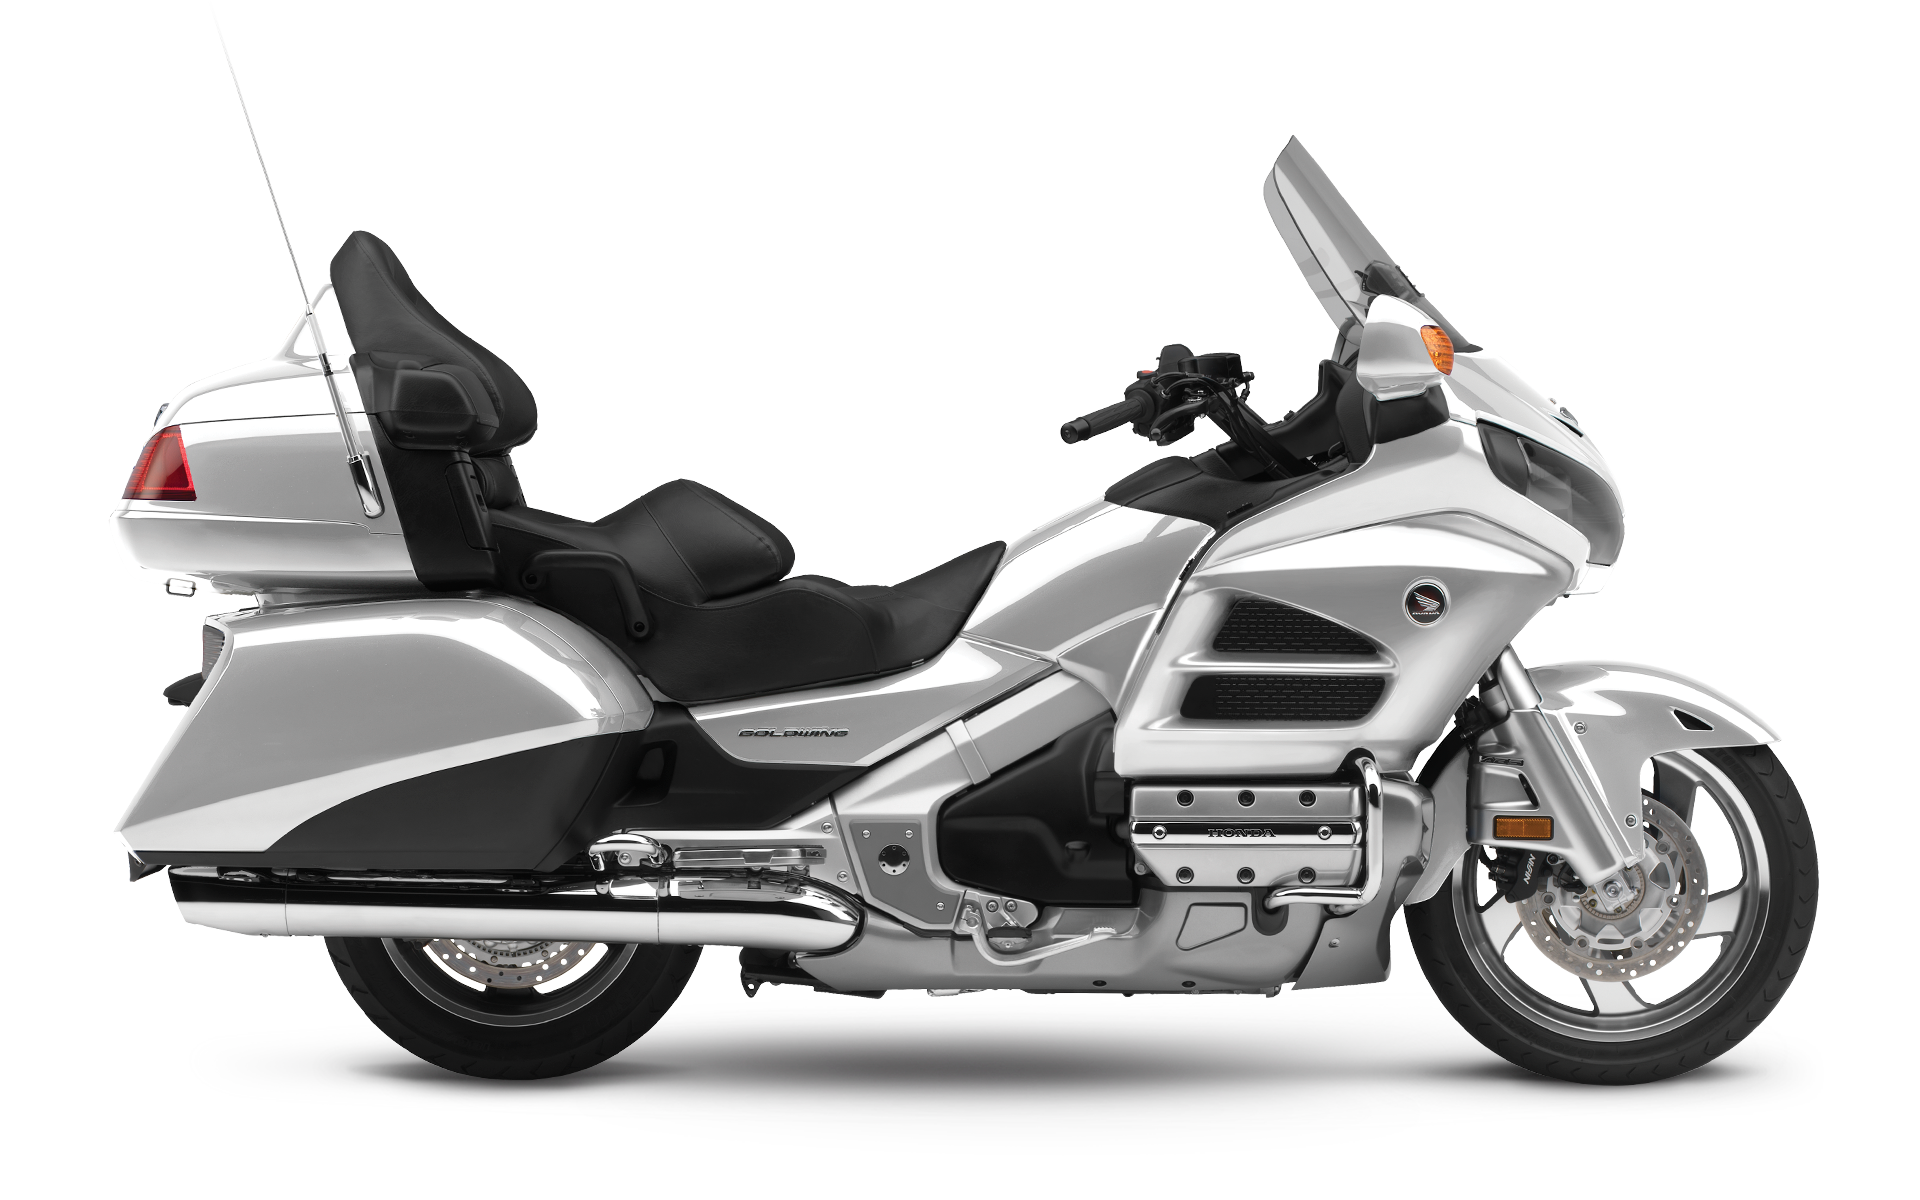 83 The Best 2019 Honda Goldwing Specs Exterior and Interior